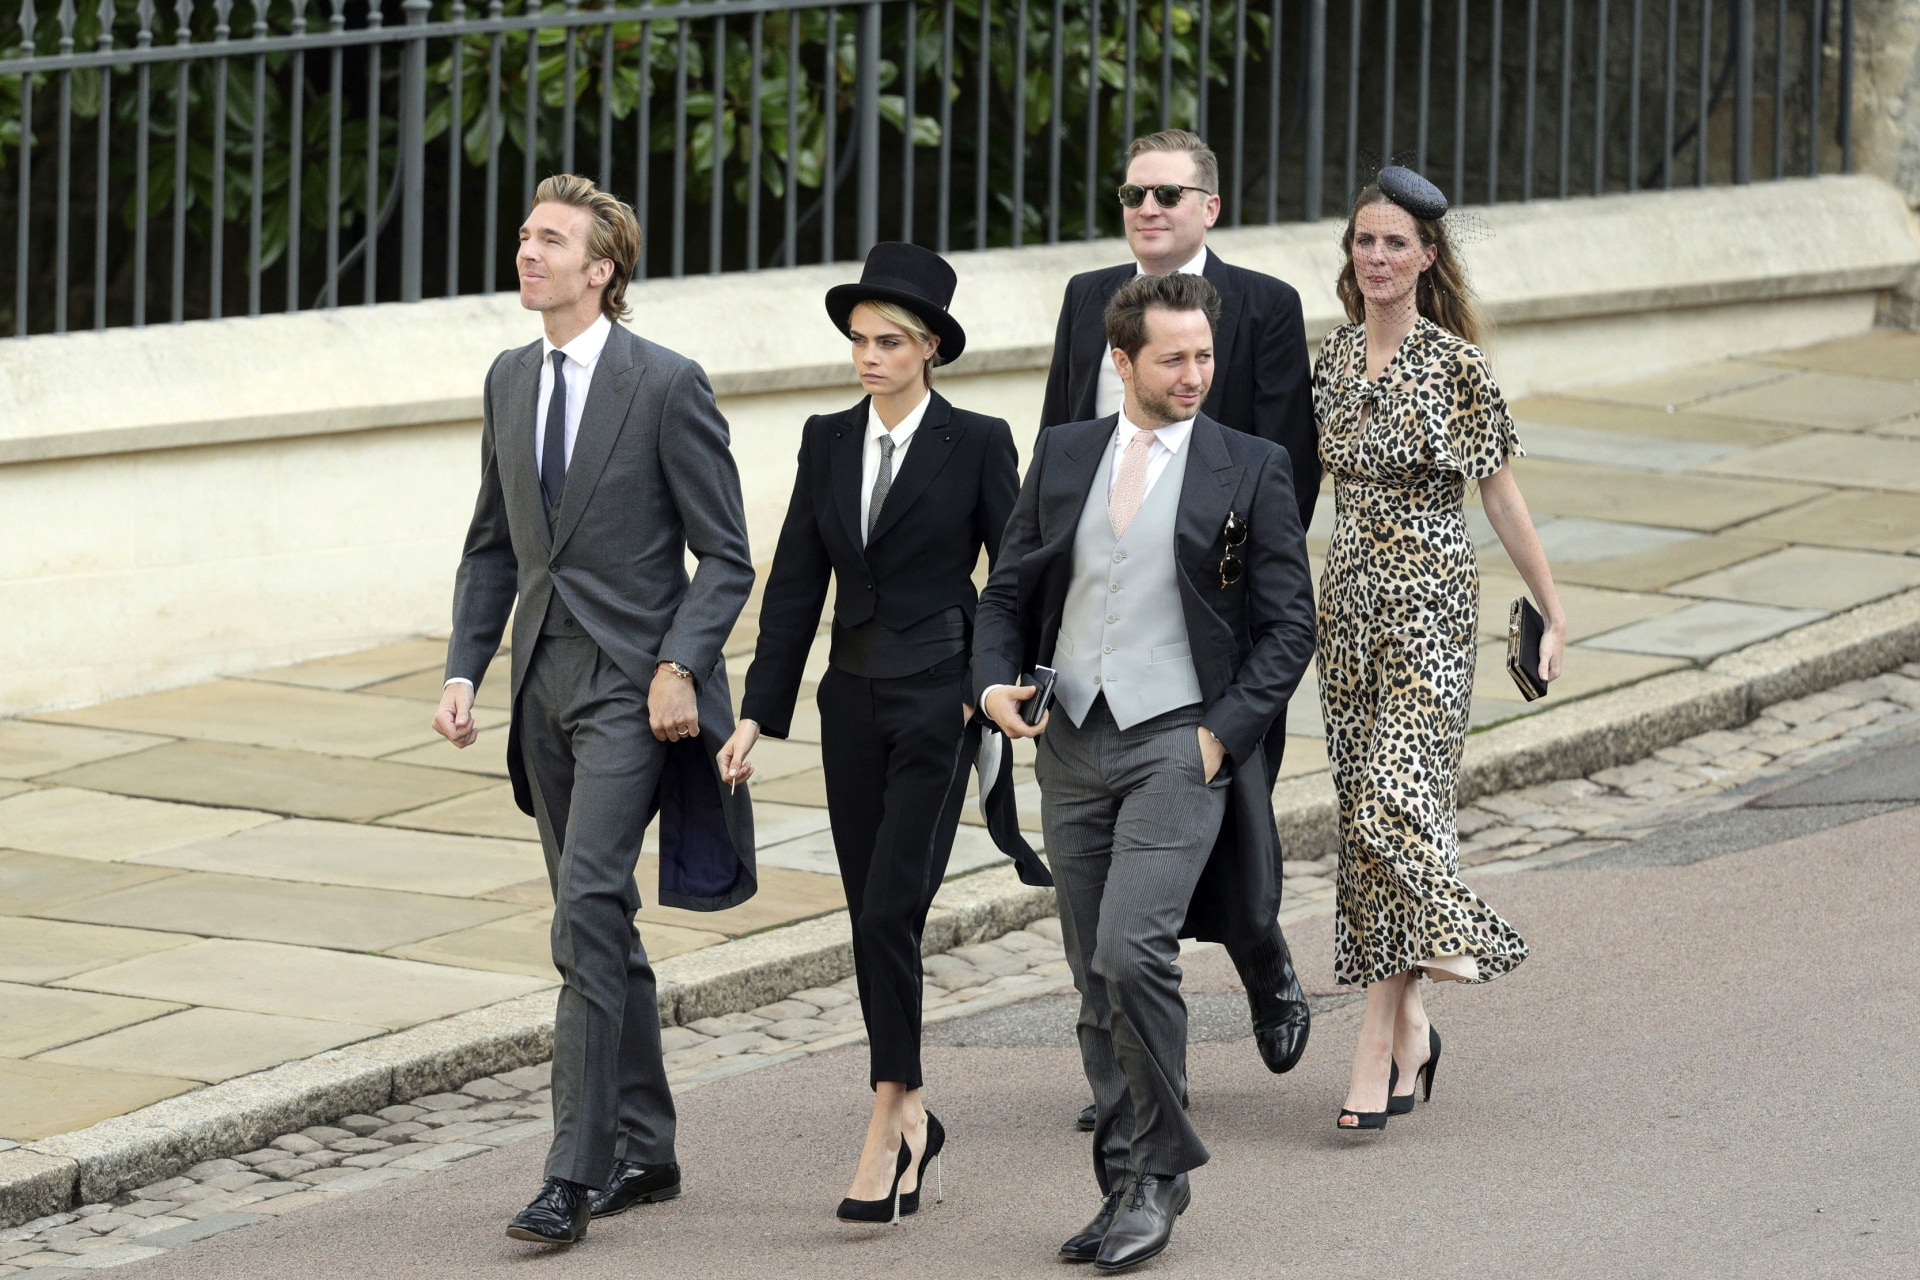 The guests at Princess Eugenie's royal wedding who missed the dress code